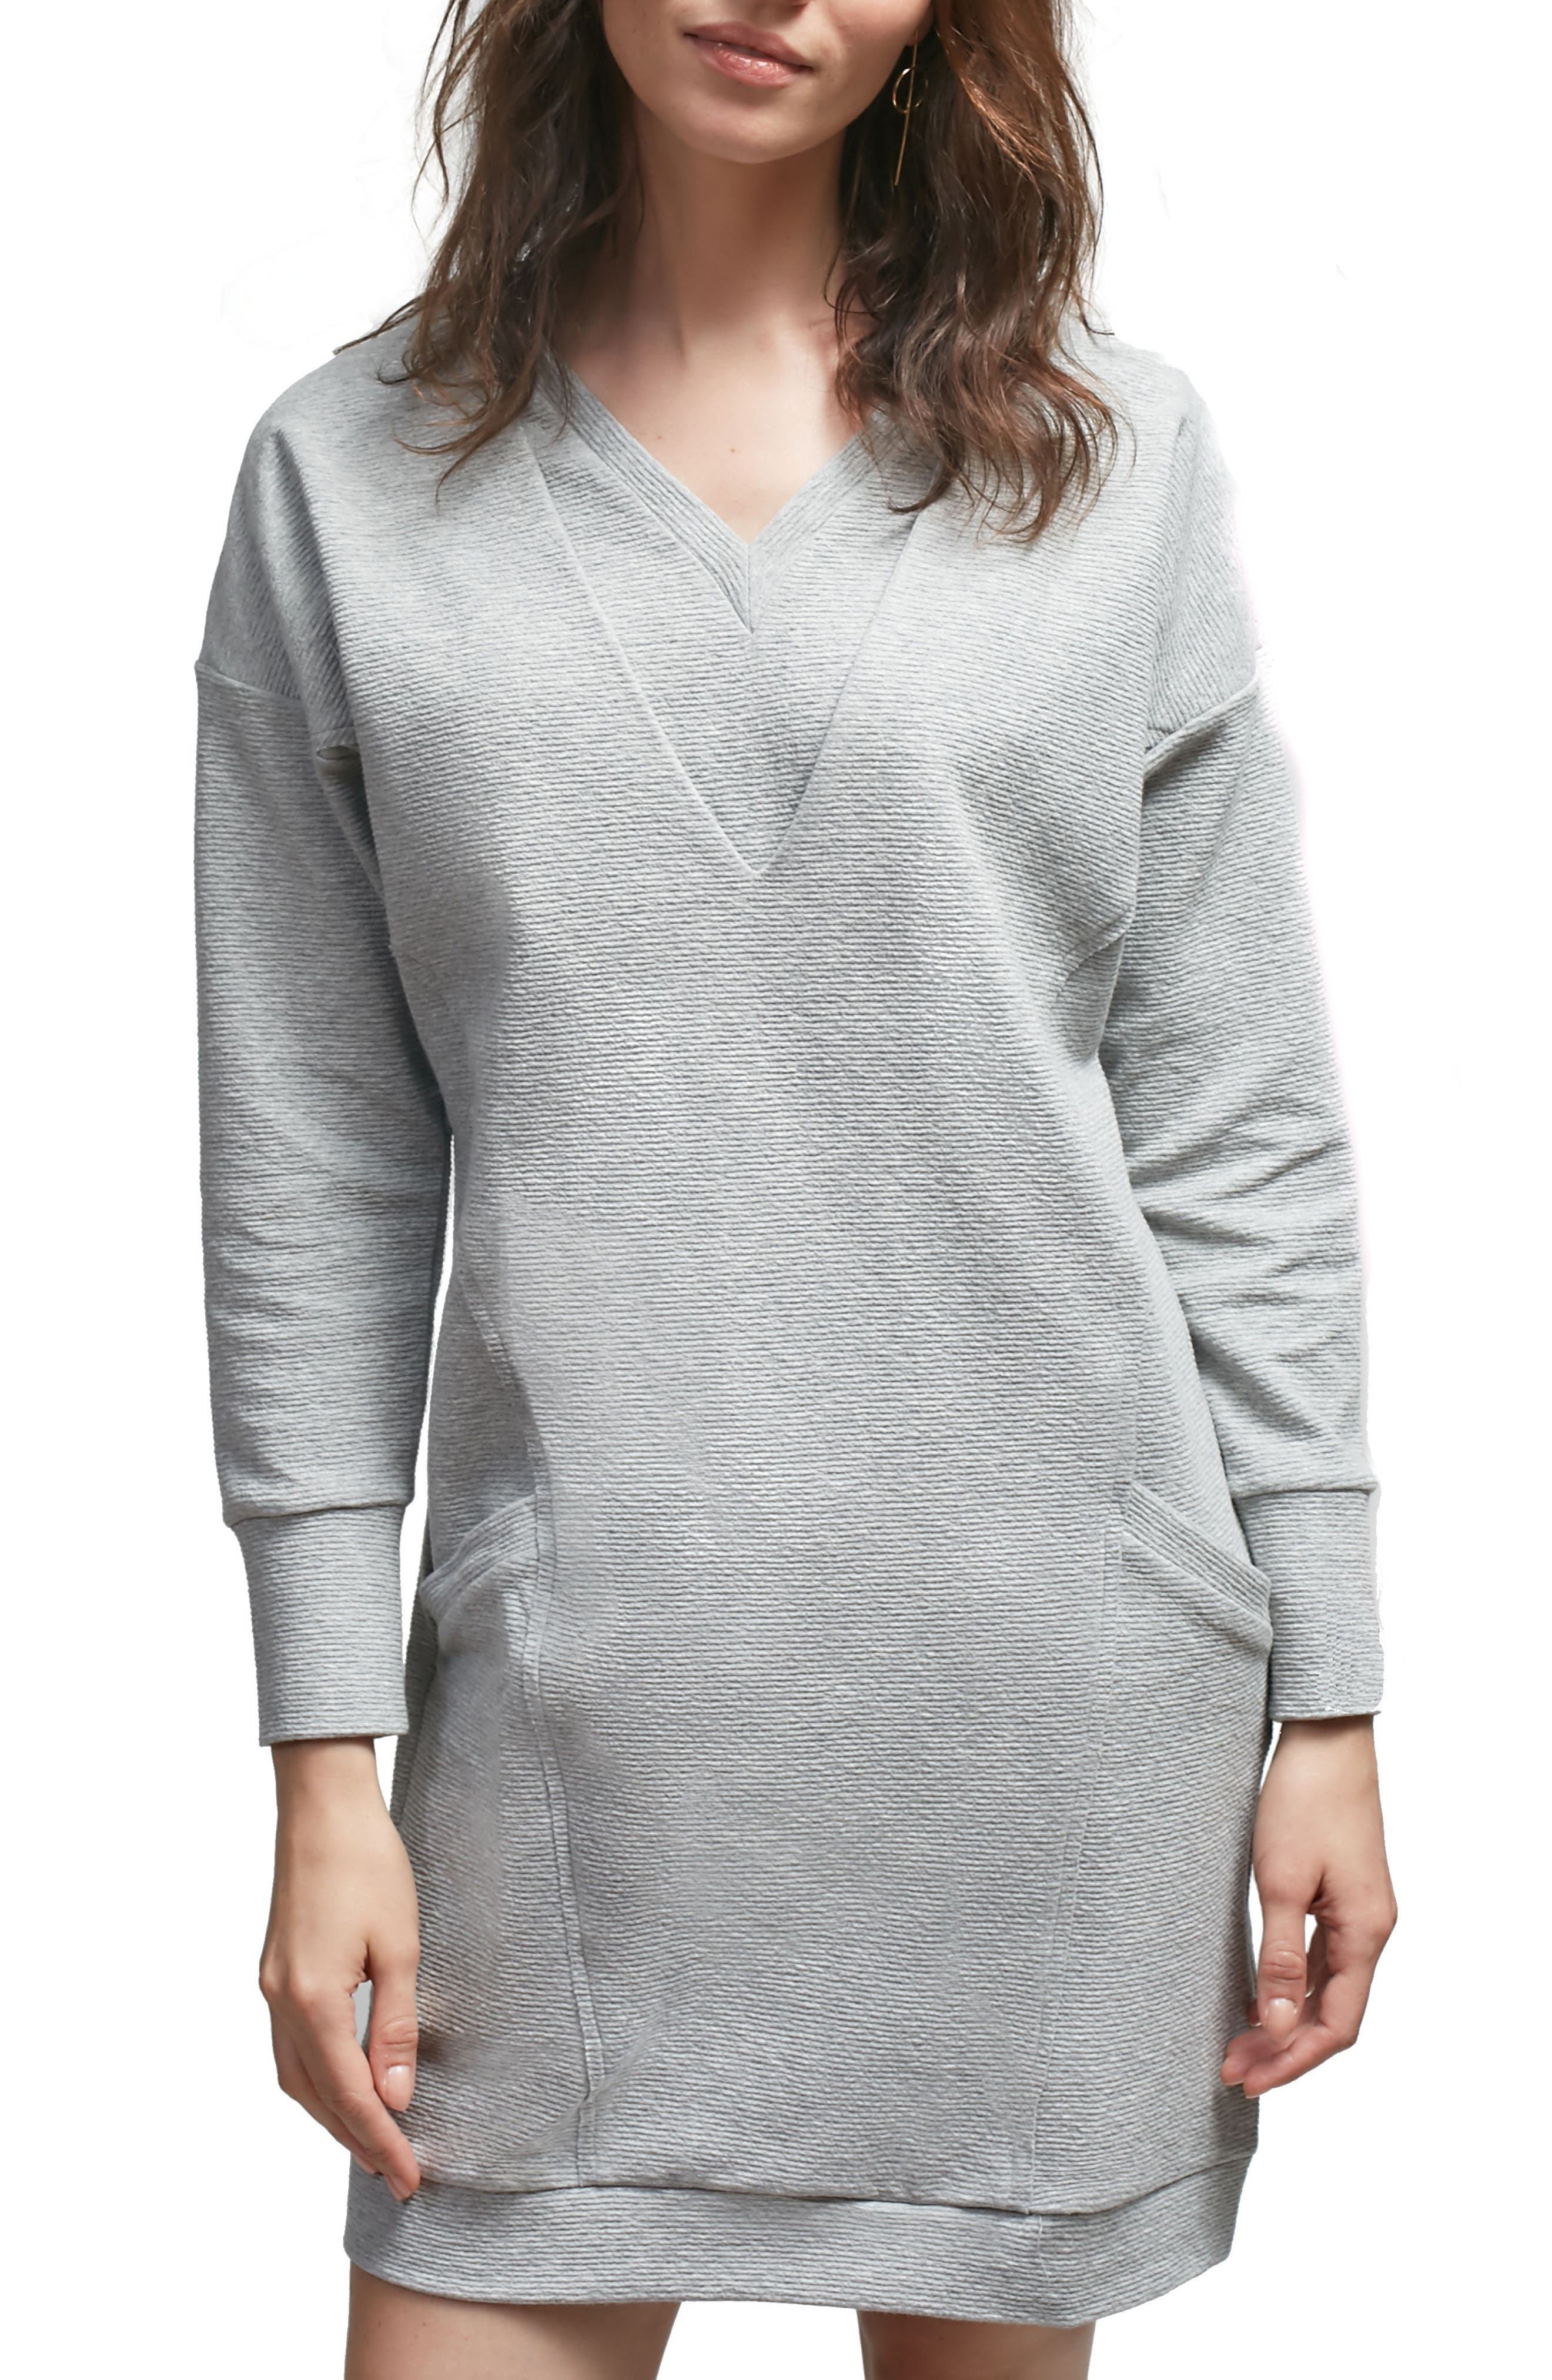 Main Image - Allette Margot Nursing Sweater Dress